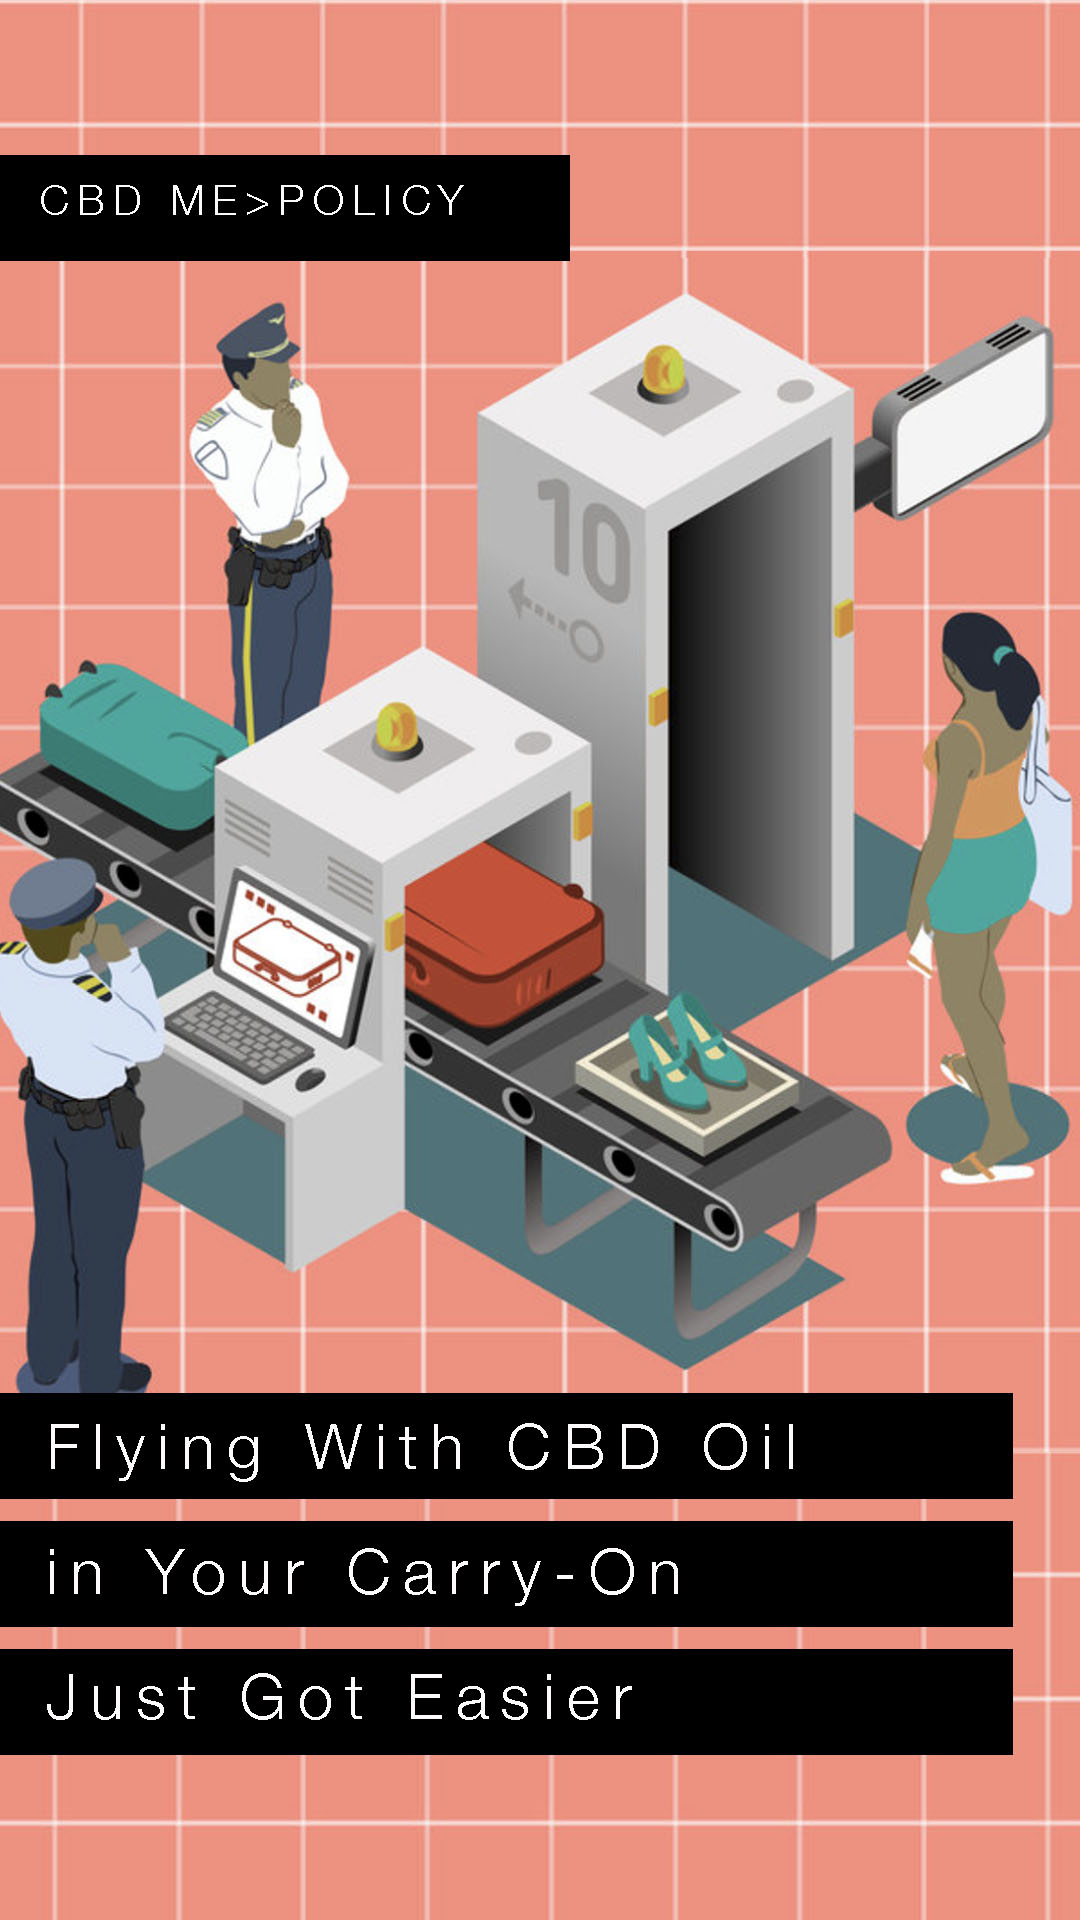 Flying With CBD Oil in Your Carry-On Just Got Easier | REAL SIMPLE